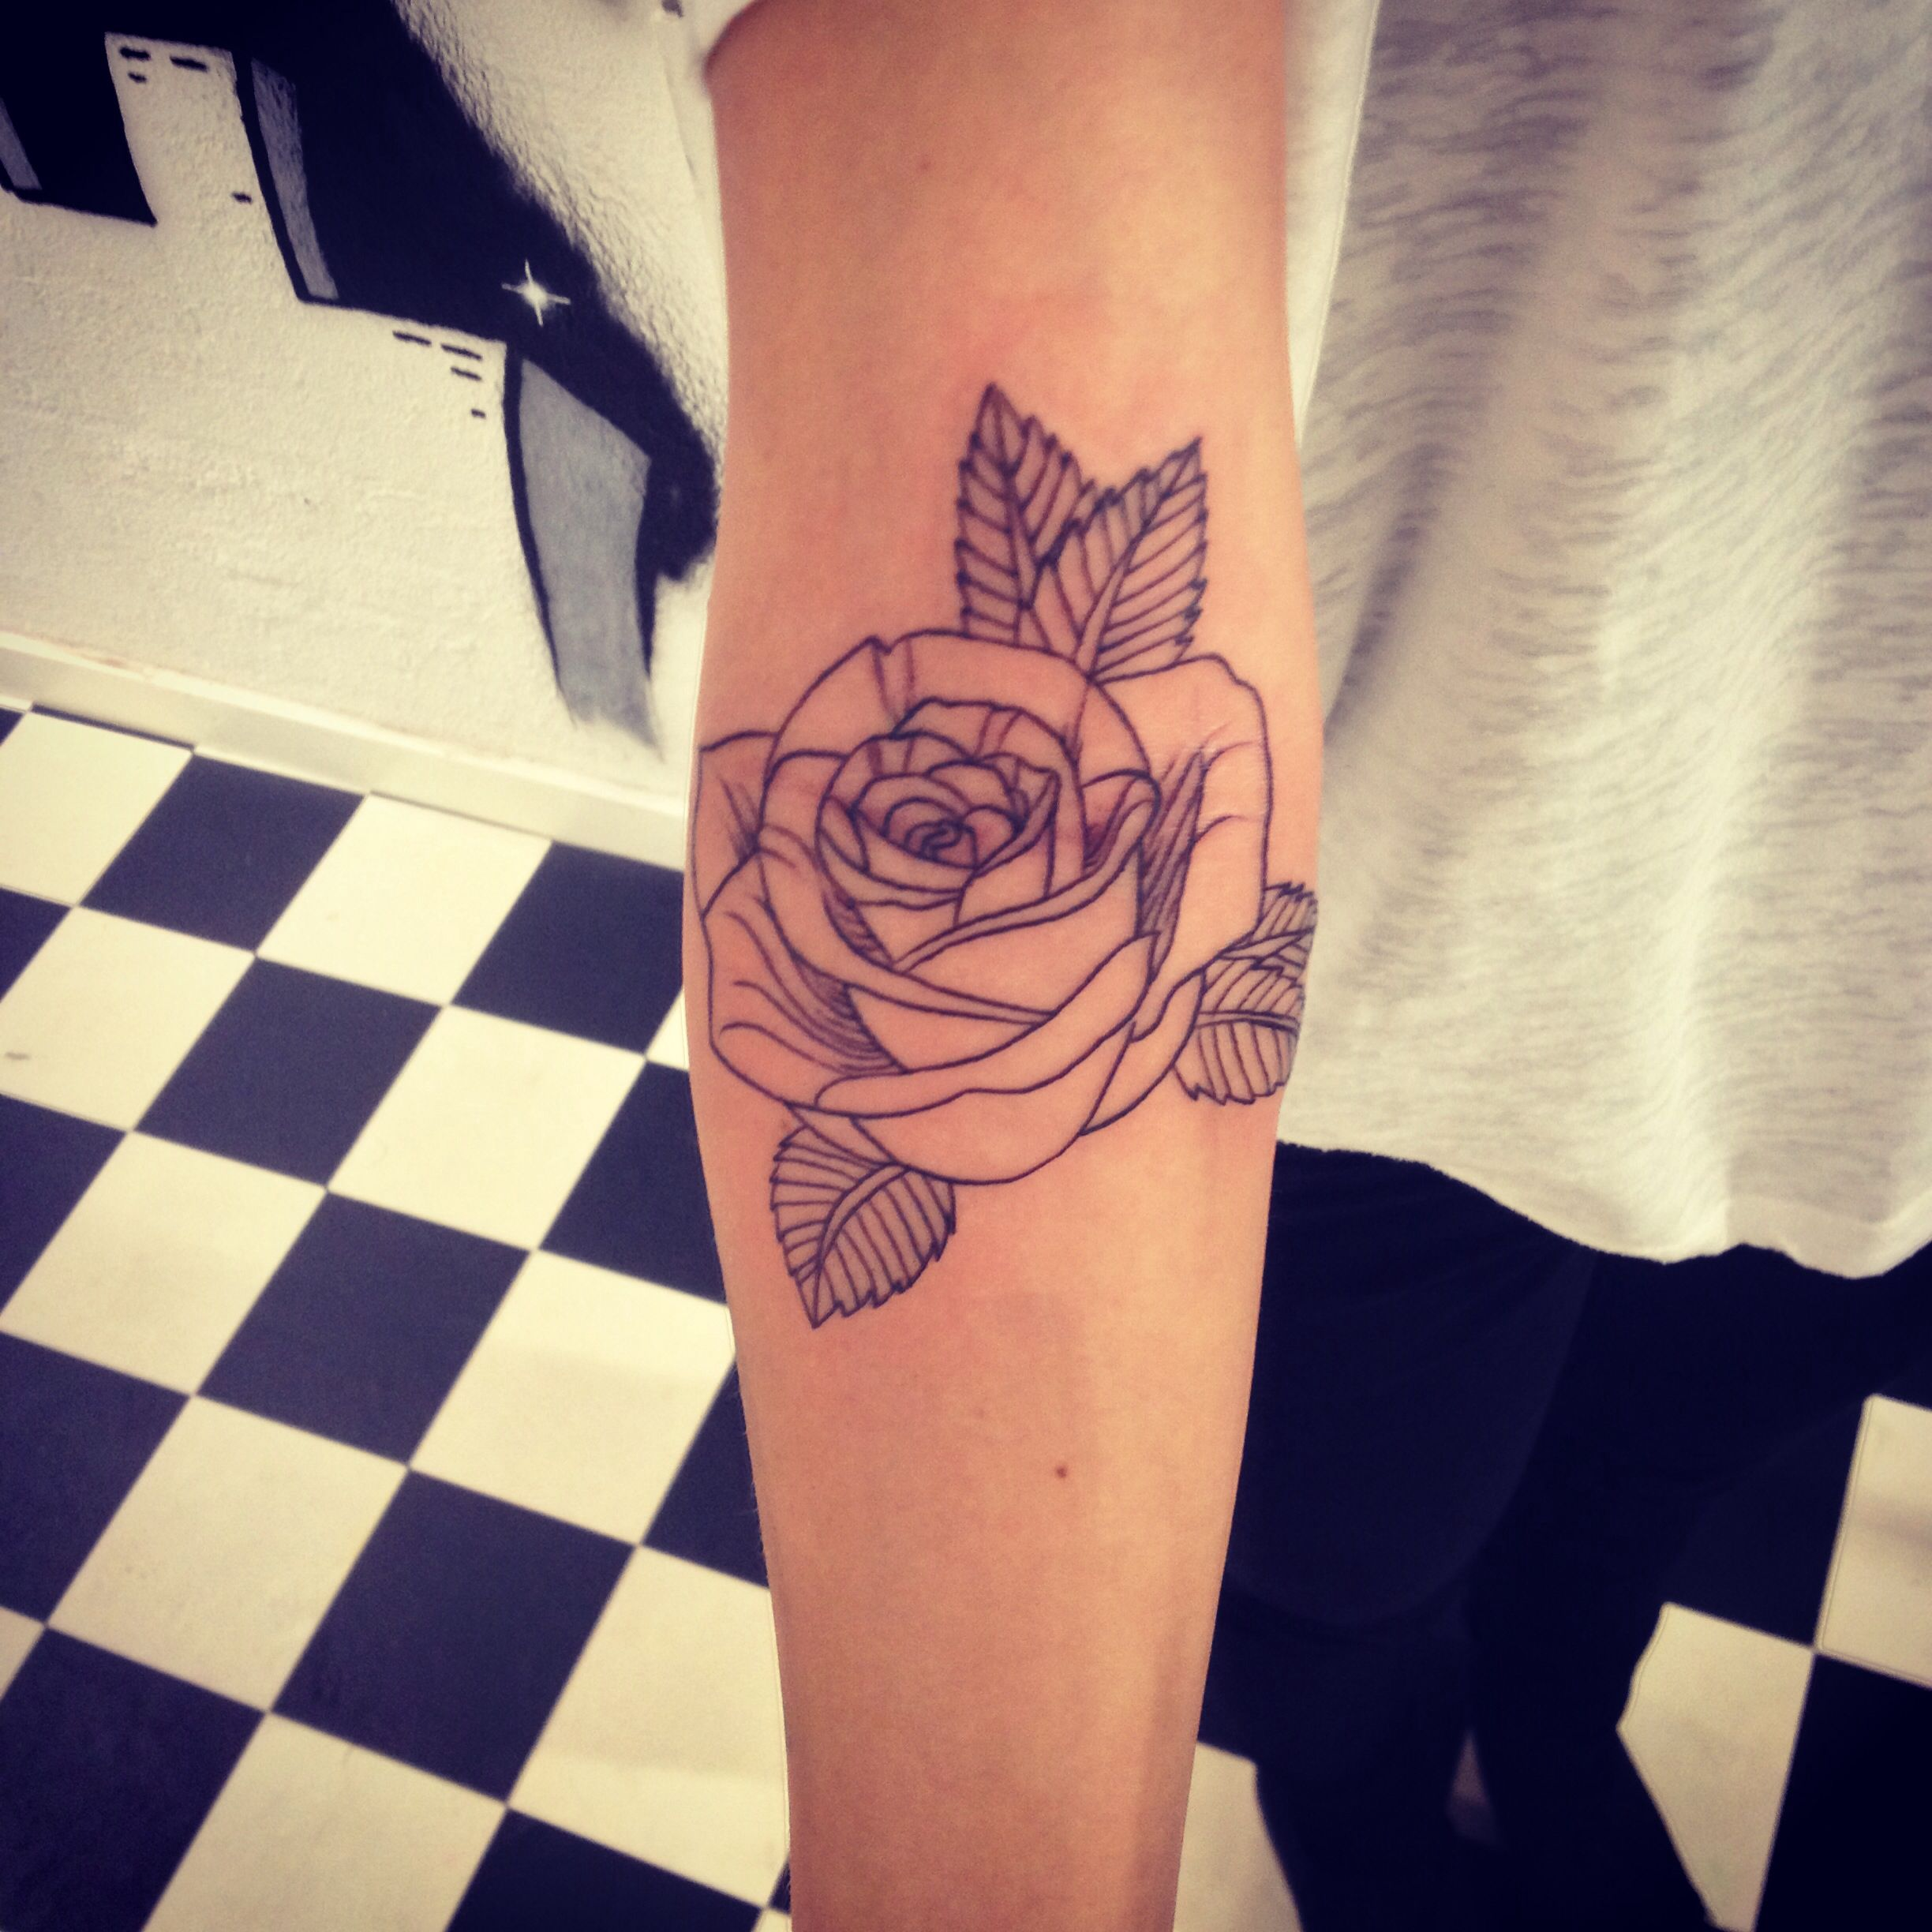 Tattoo Simple Rose: Design And Tattoo By Me. Simple Rose Tattoo